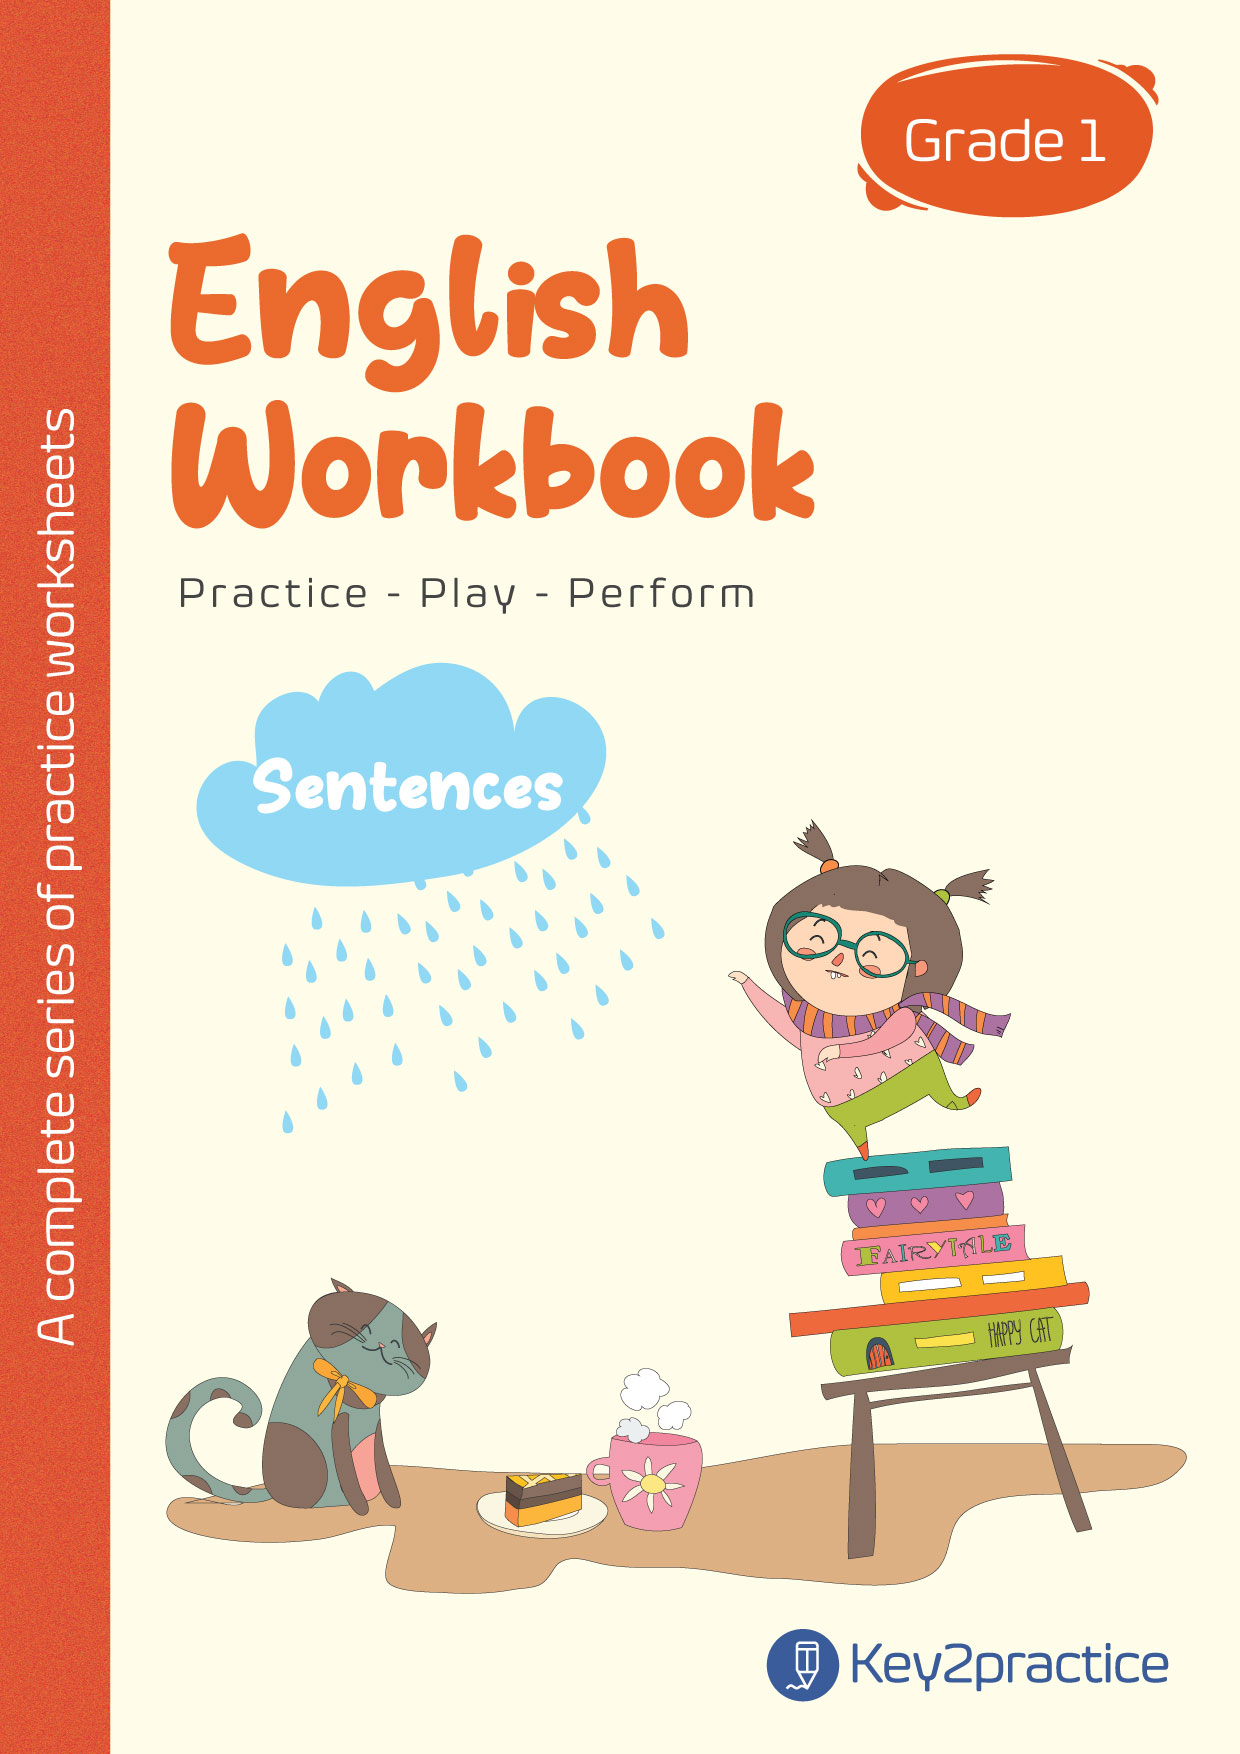 English Worksheets Grade 1 Workbook On Sentences